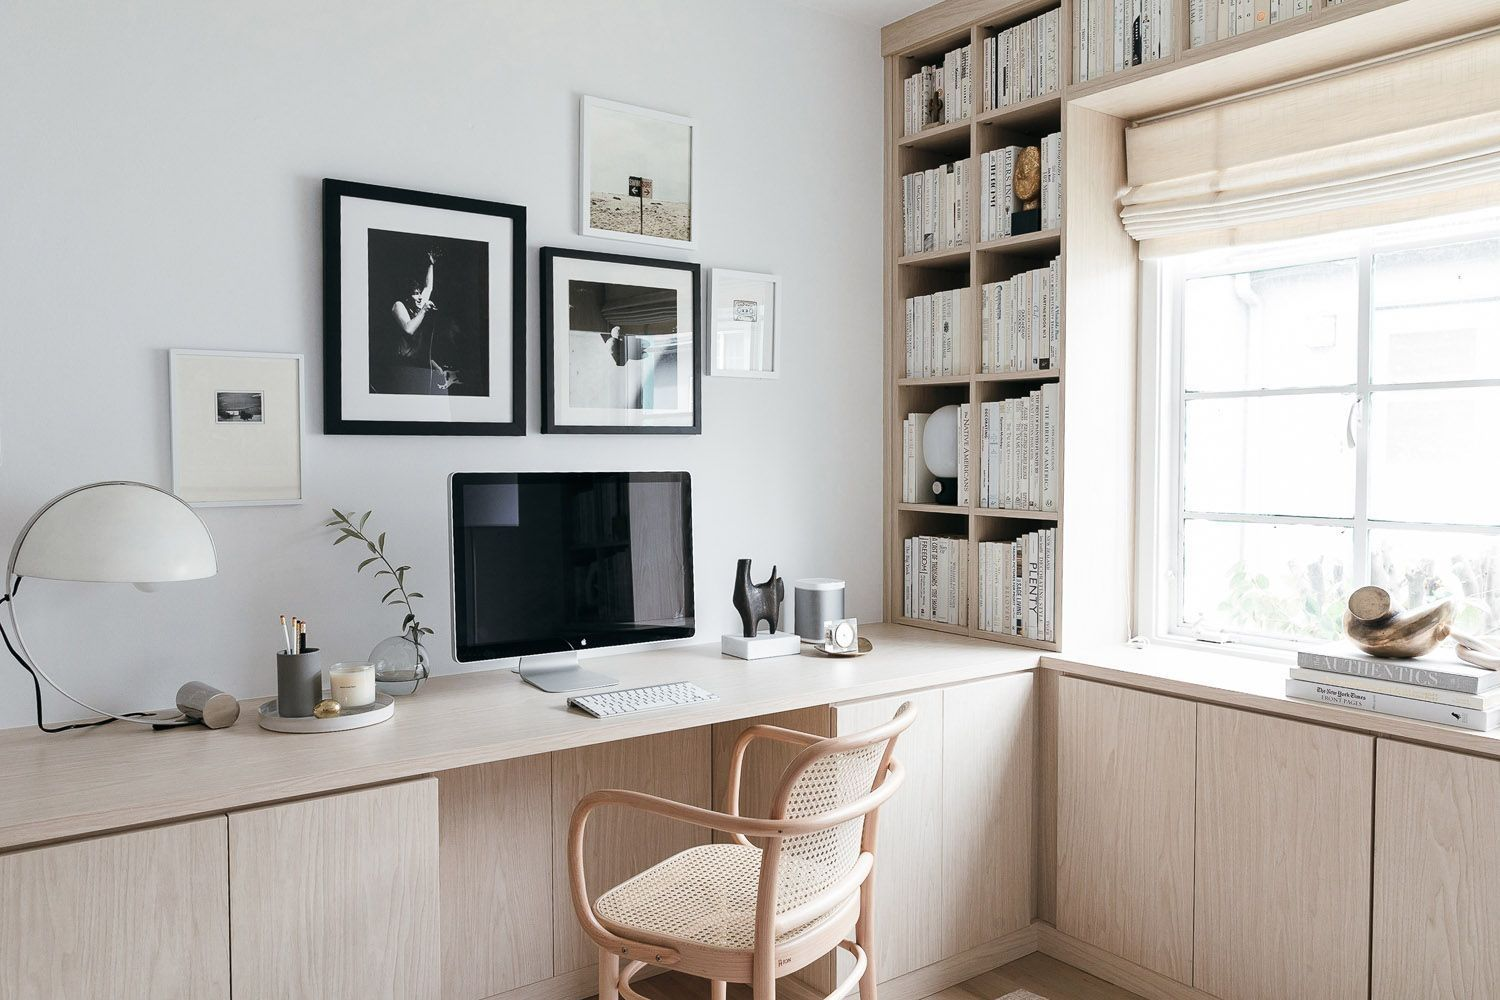 30 Charming Home Office Cabinet Design Ideas For Easy Storage With Images Zen Home Office Home Office Cabinets Home Office Design